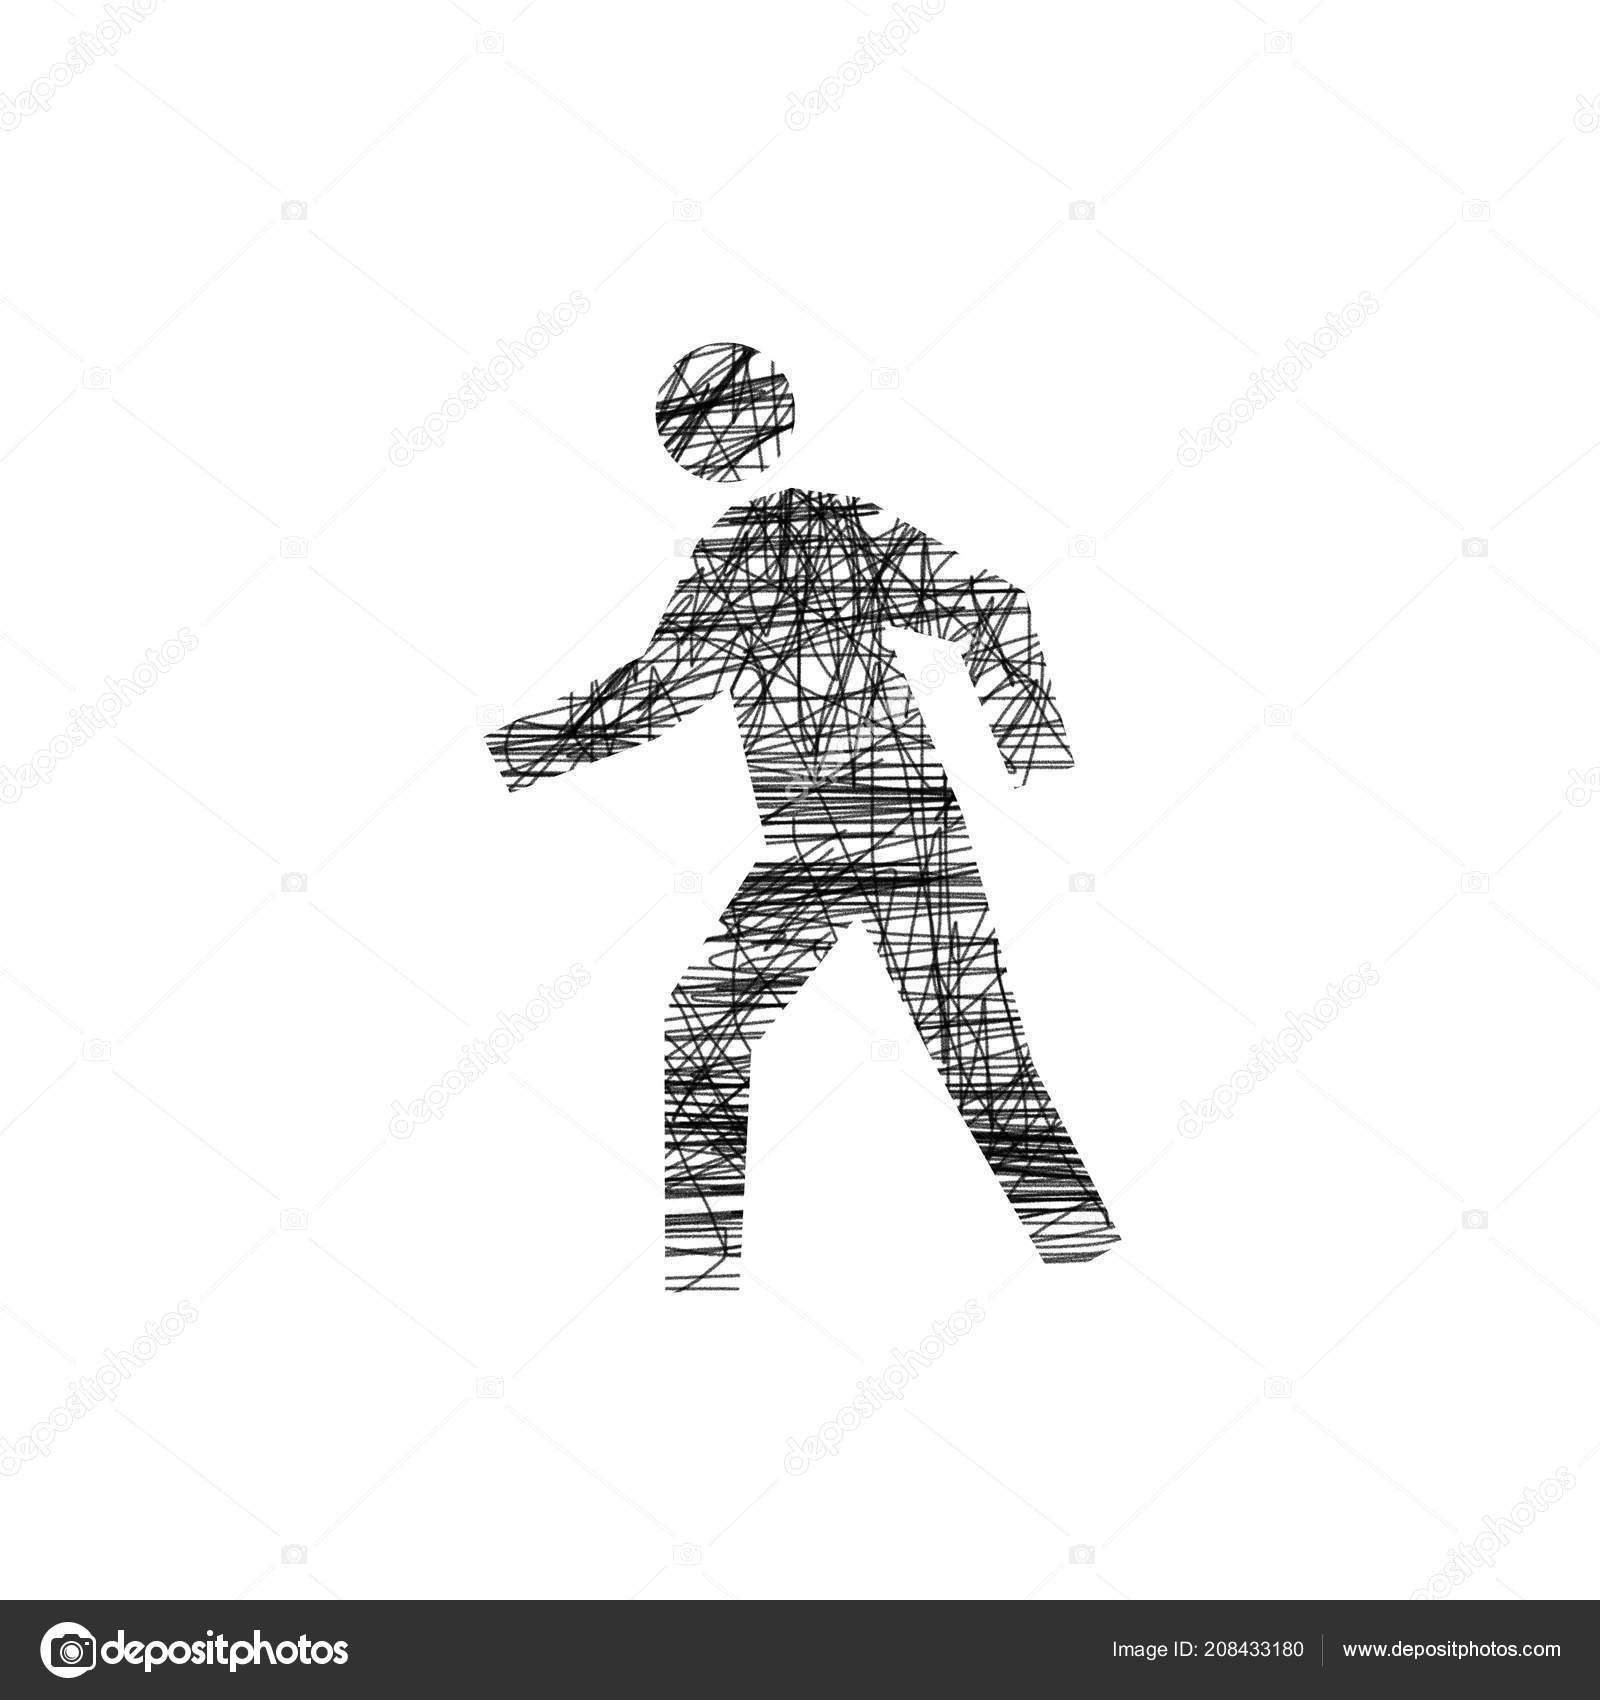 Walking man primitive drawing in black pencil on a white background stock photo